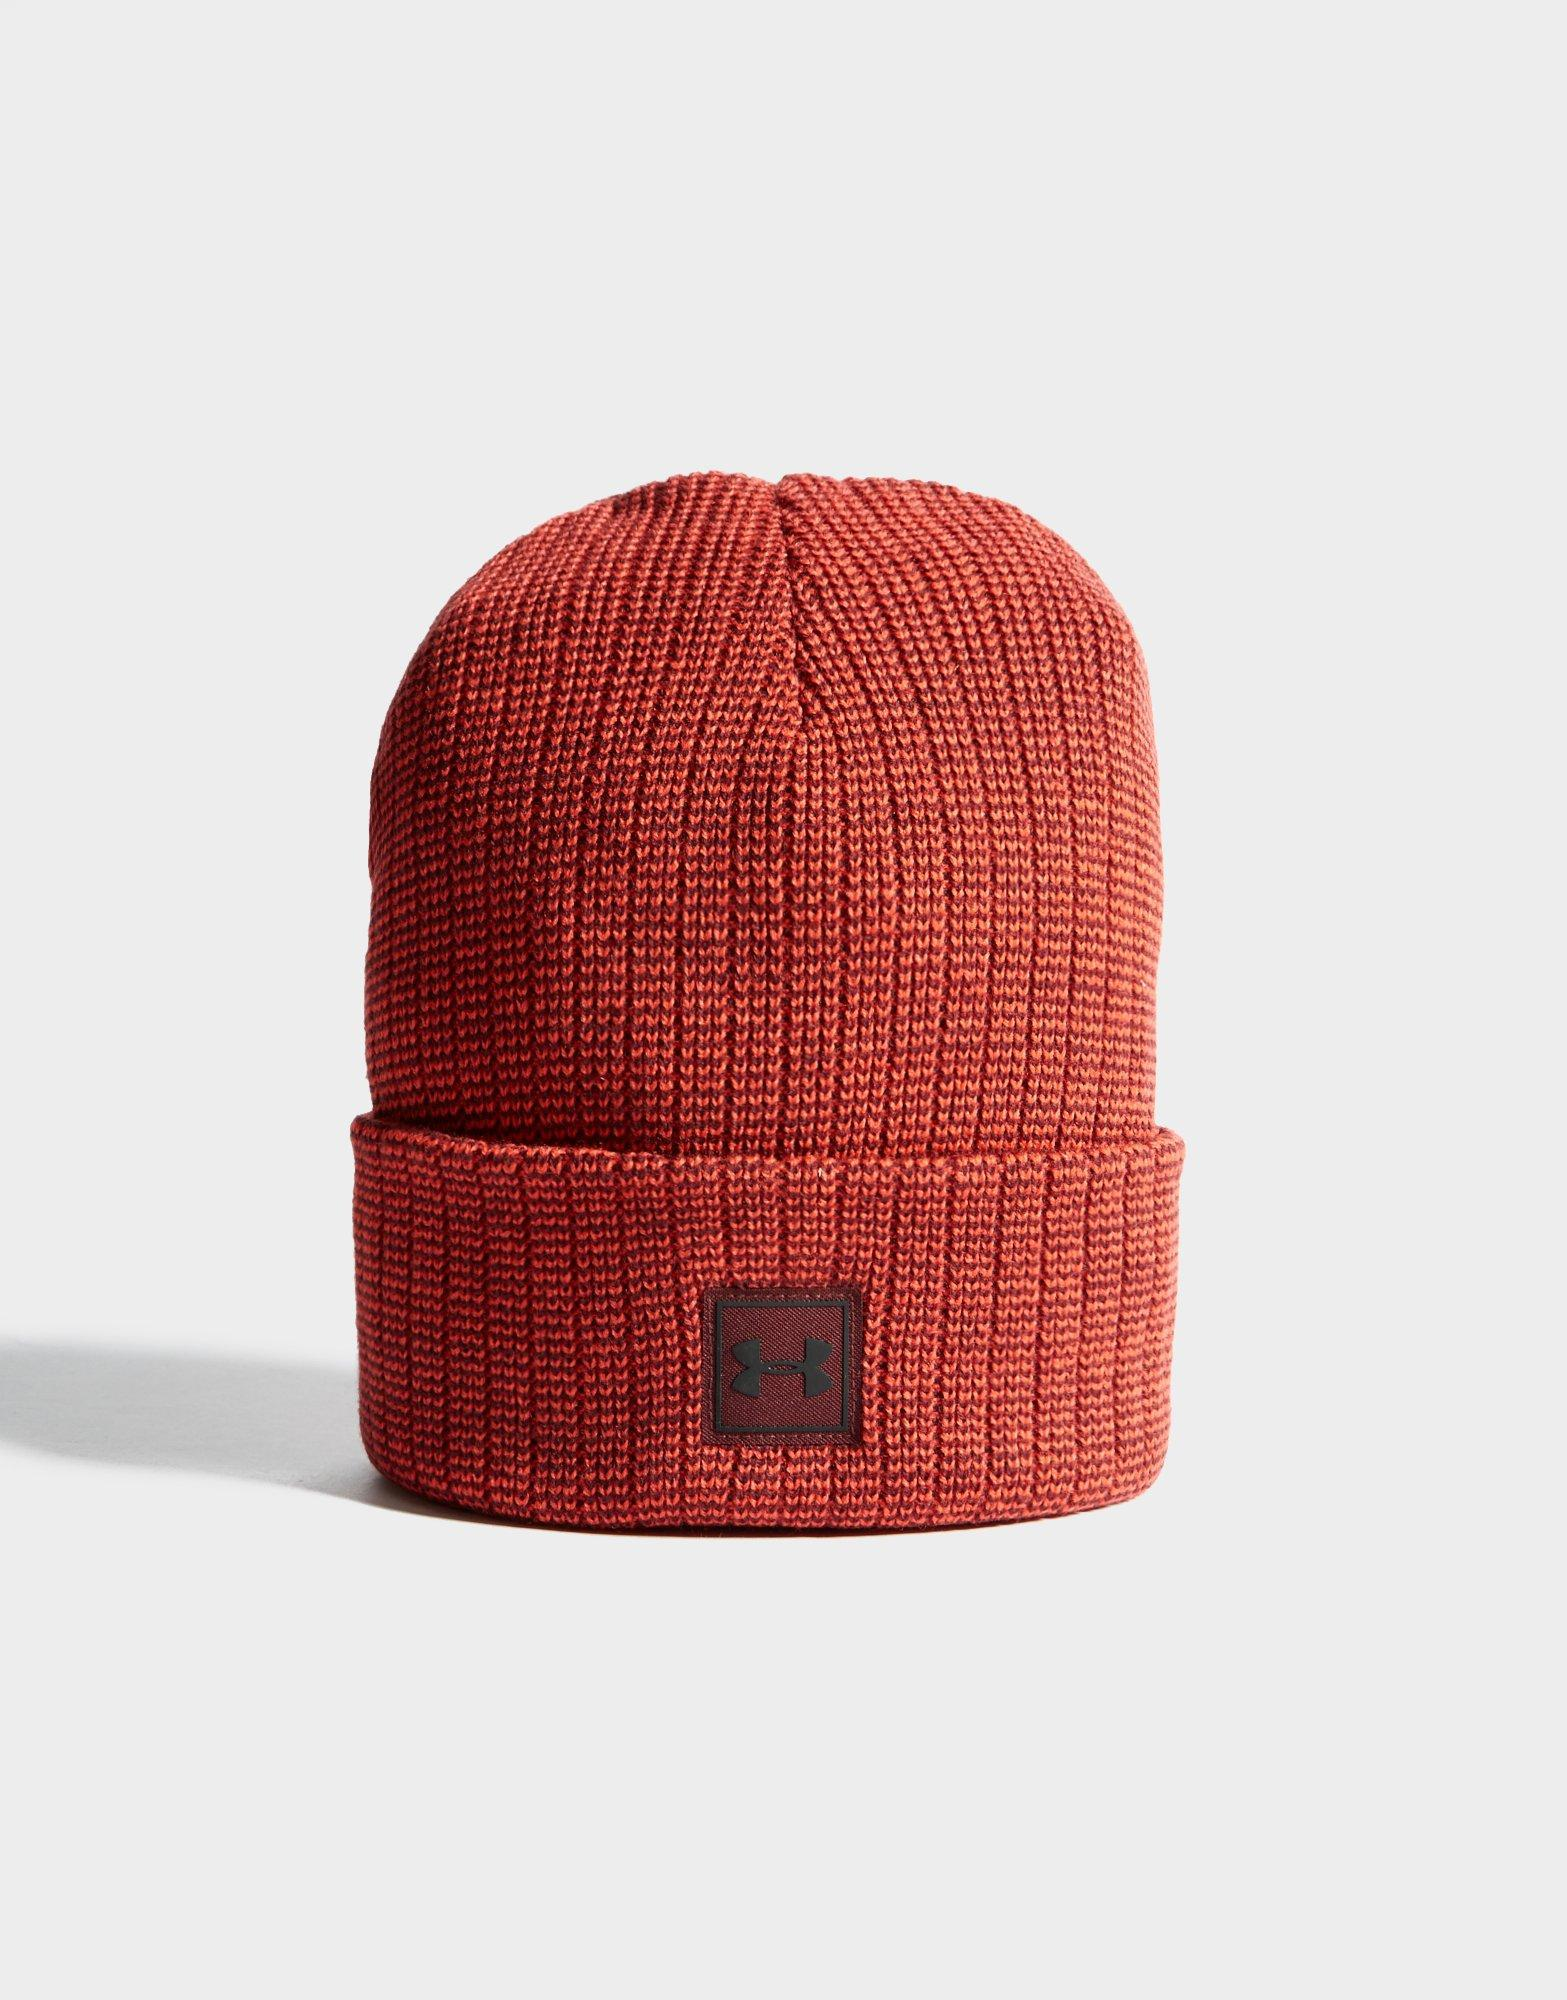 Under Armour Truckstop Beanie in Red for Men - Lyst 025813b83bb8